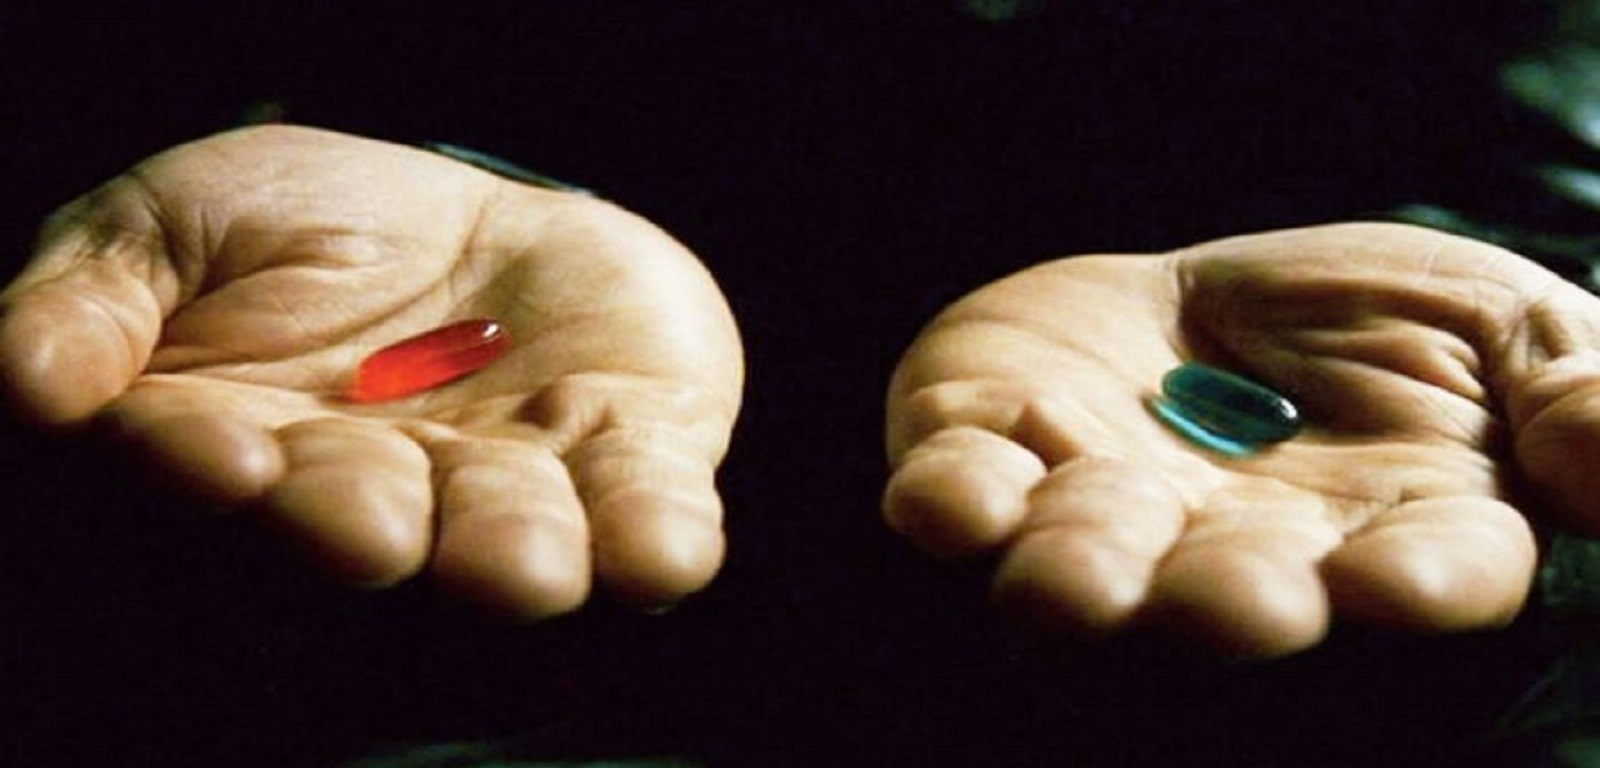 Incel - Red and Blue pill